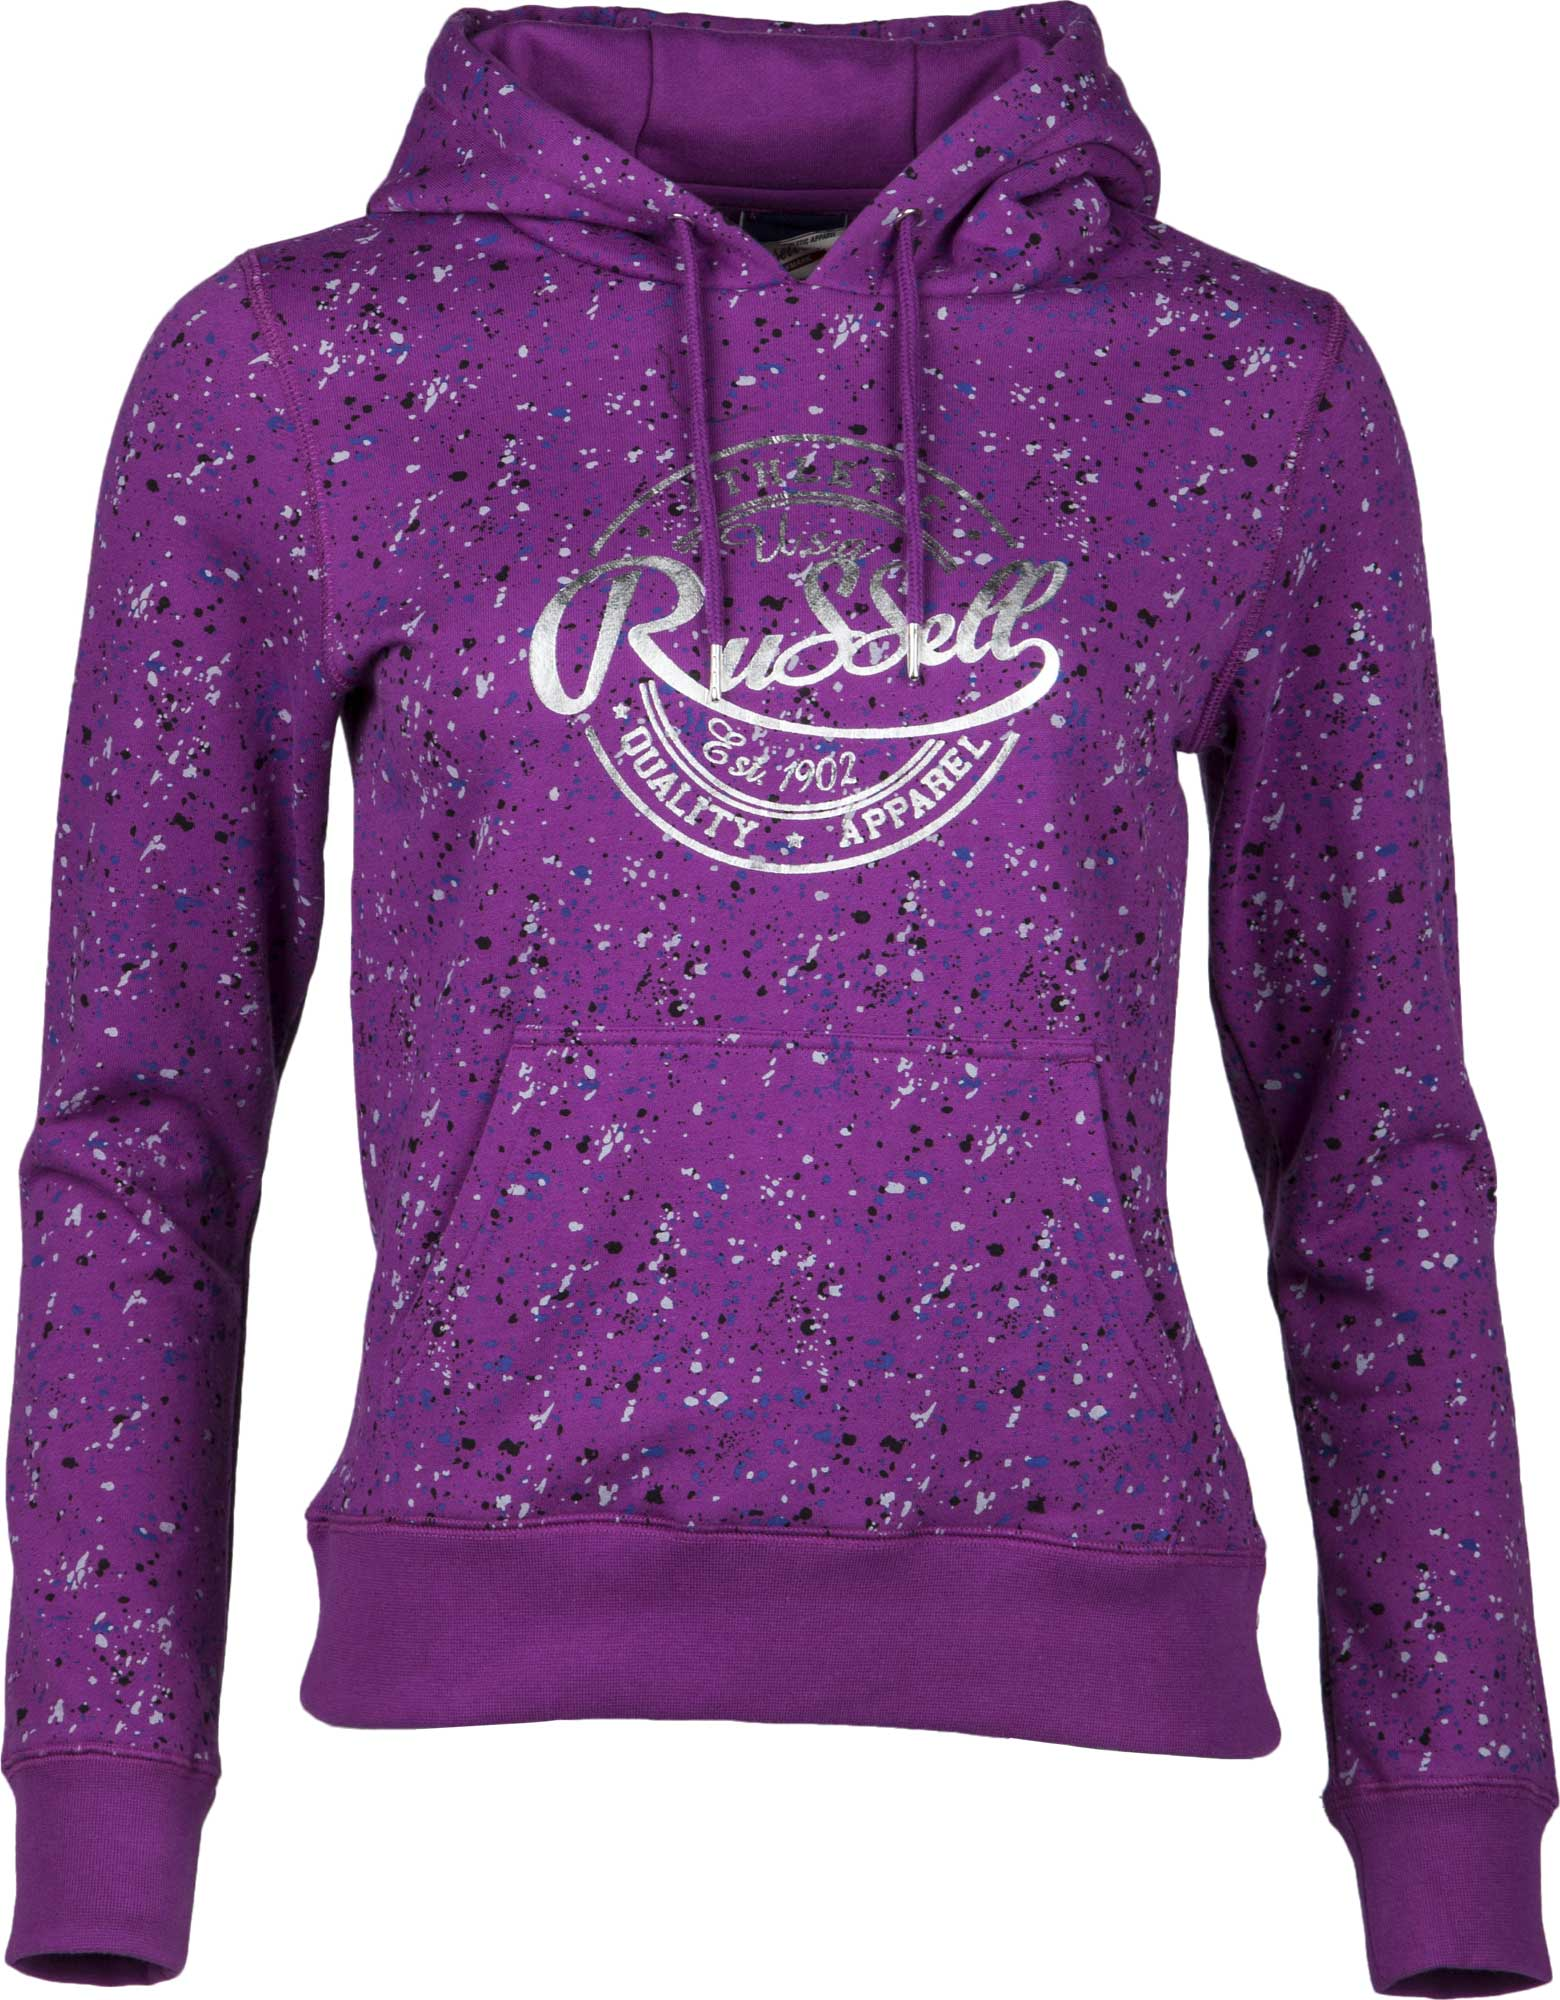 41f73d25349 Russell Athletic HOODED SWEAT WITH ALLOVER PRINT - Glami.cz